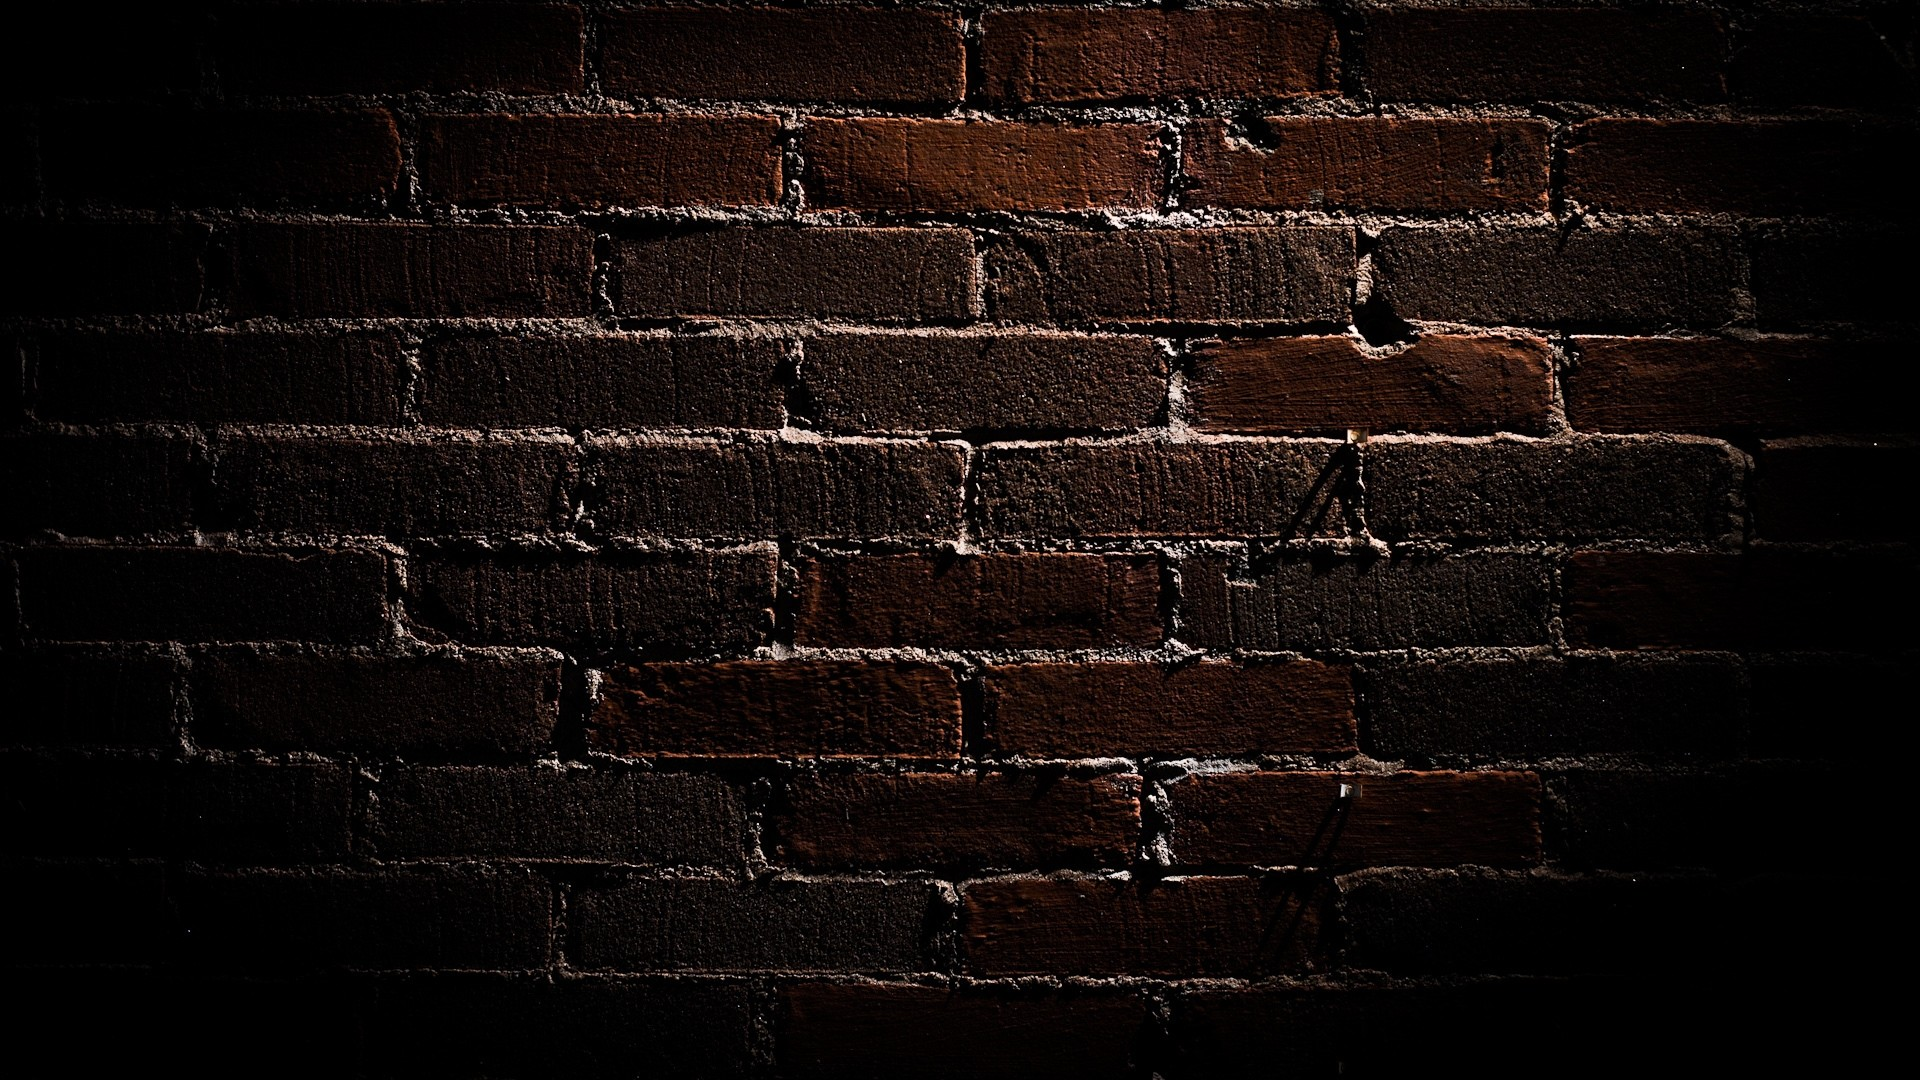 Res: 1920x1080, Dark Brick Wallpaper High Quality Wall Hd Desktop And Mobile Of Laptop